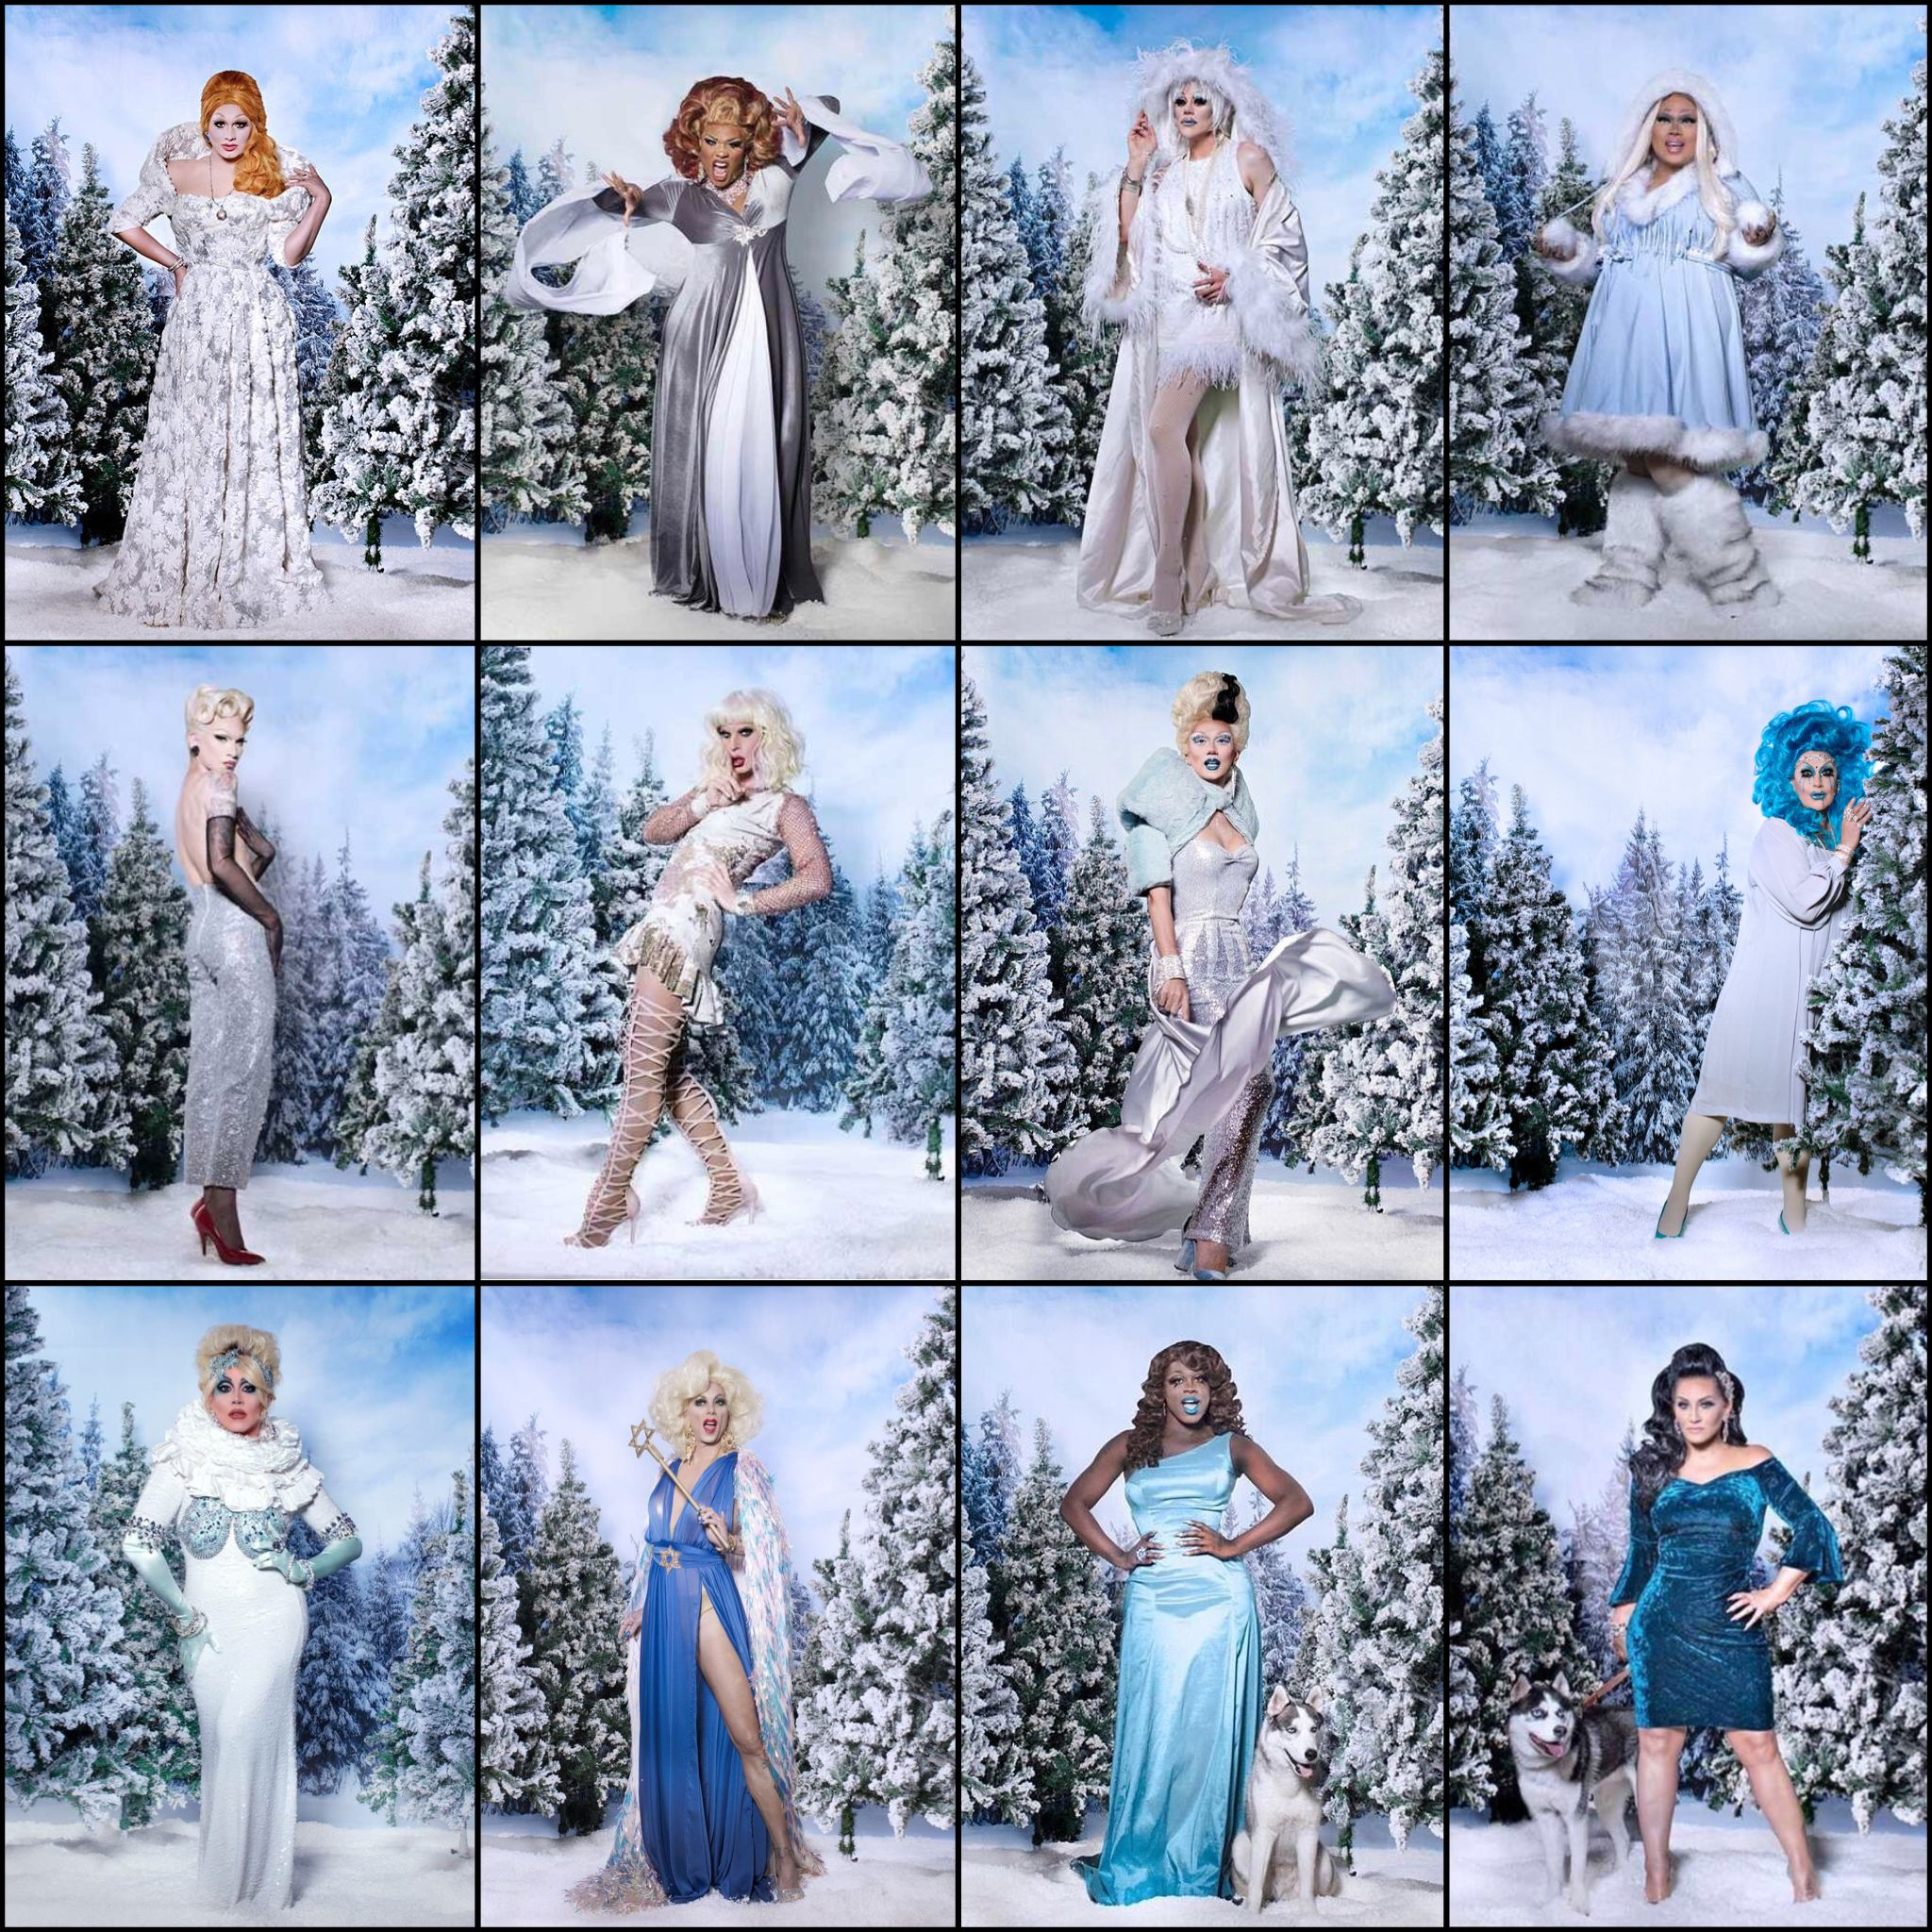 Christmas Queens.Christmas Queens 3 Jinkx Peppermint Thorgy Jiggly Fame